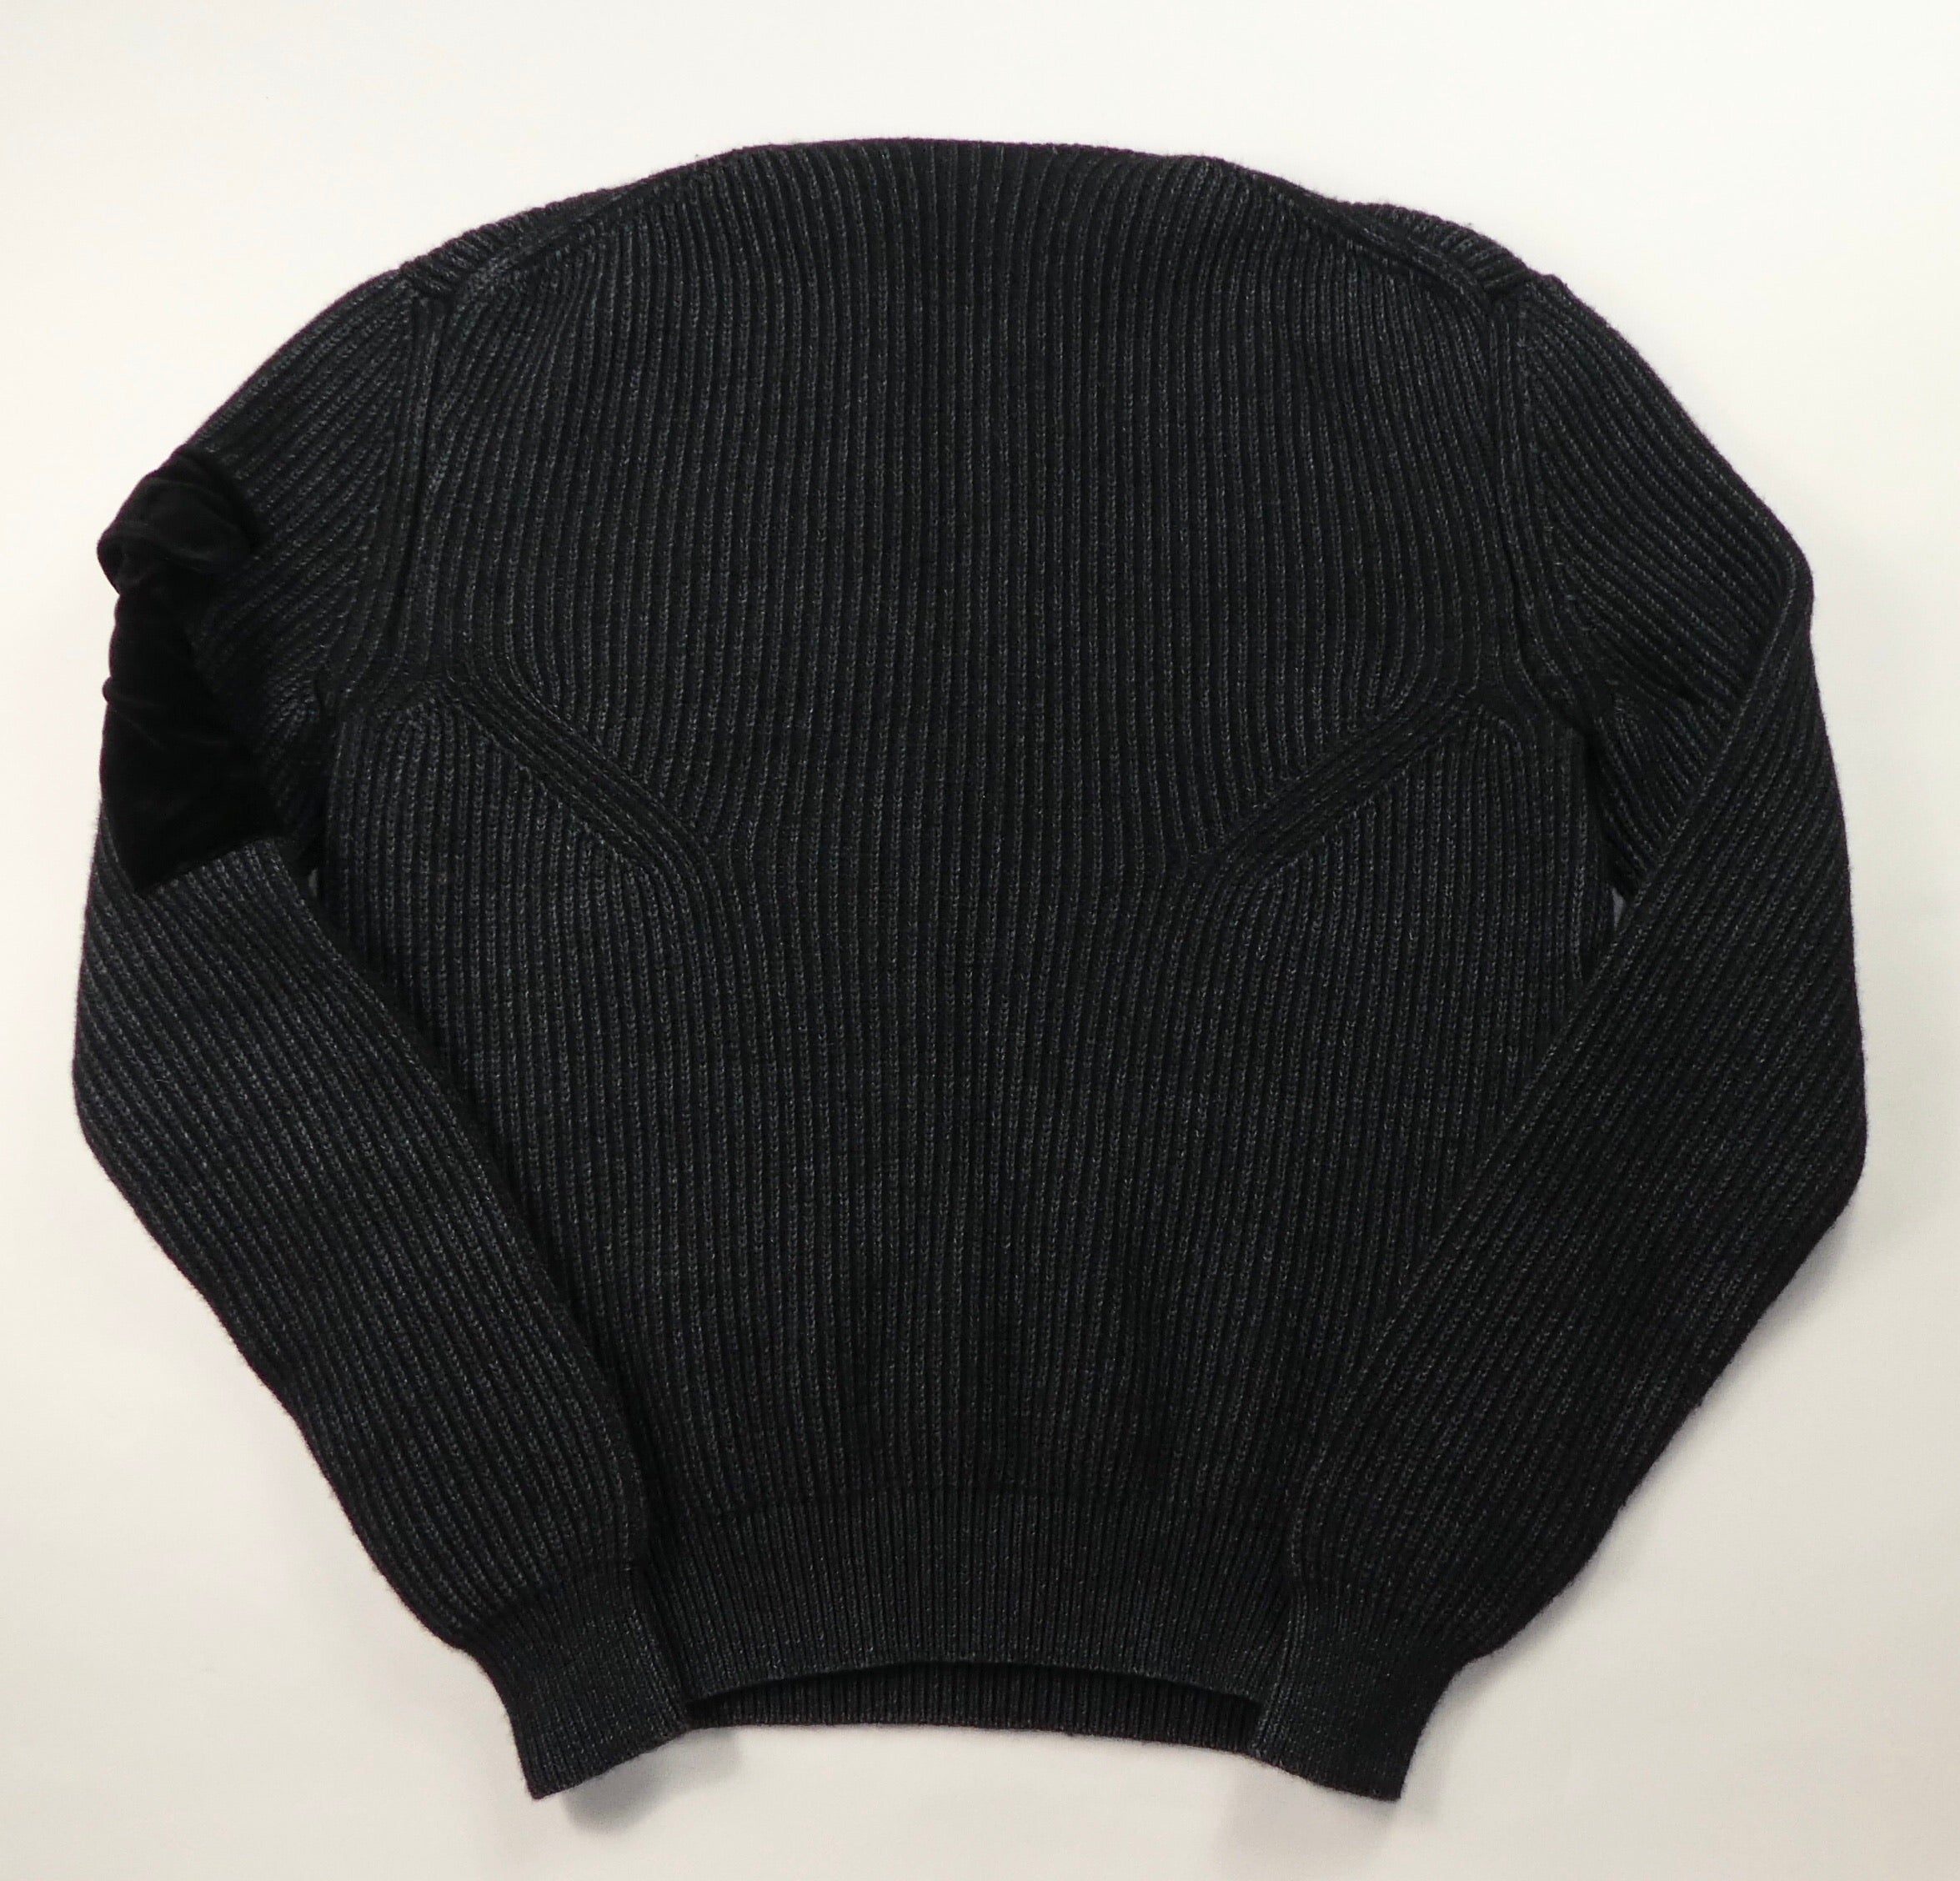 Off White Patch Knit Jumper - Small